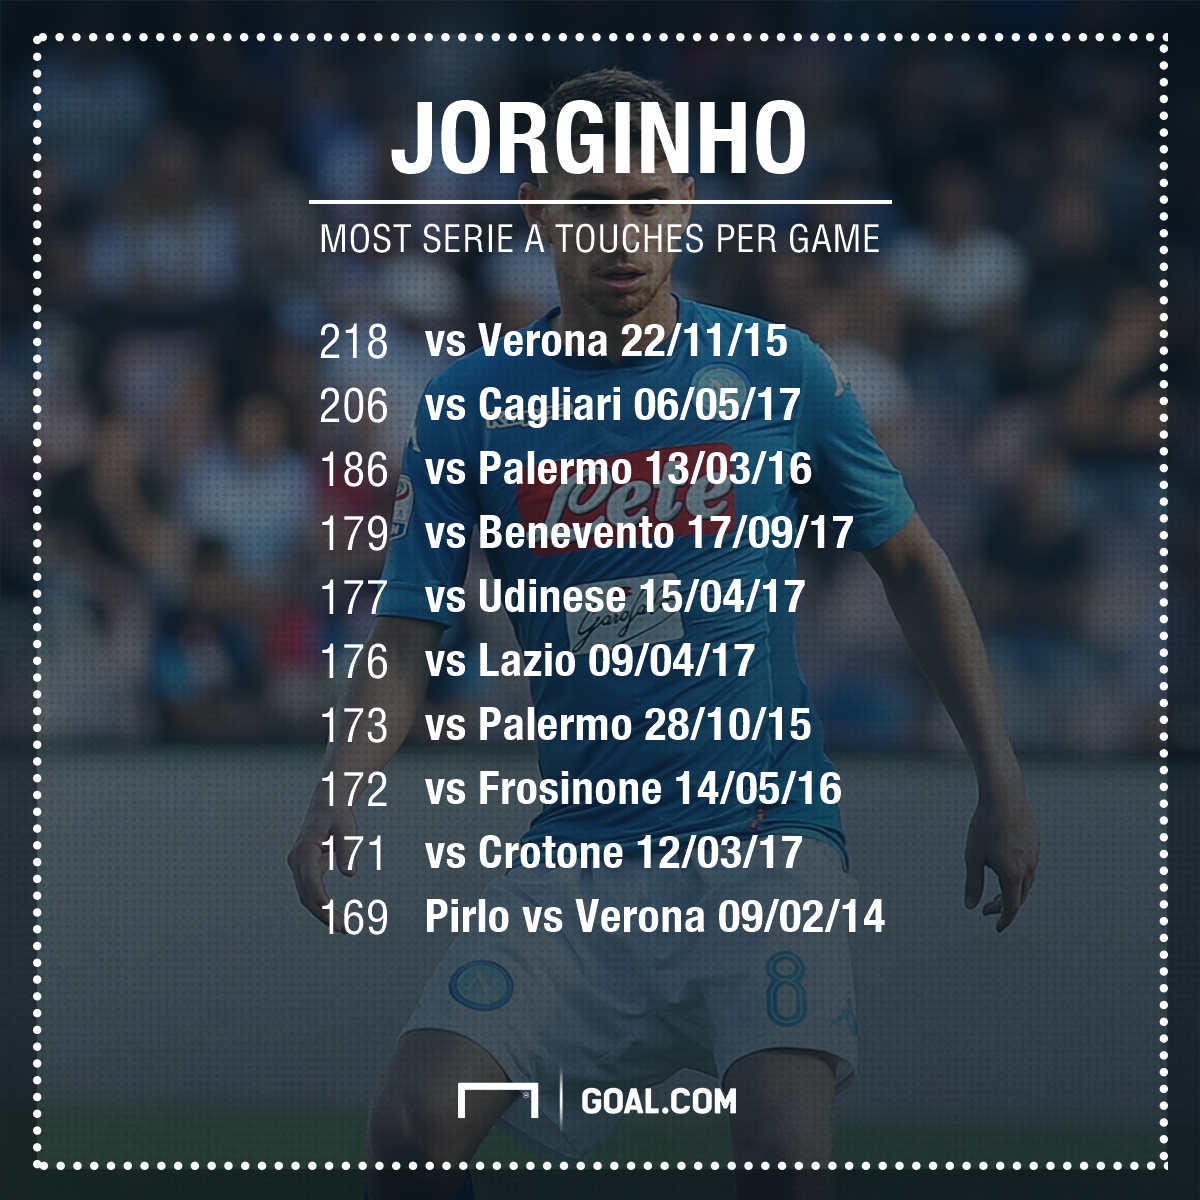 Jorginho GFX Touches